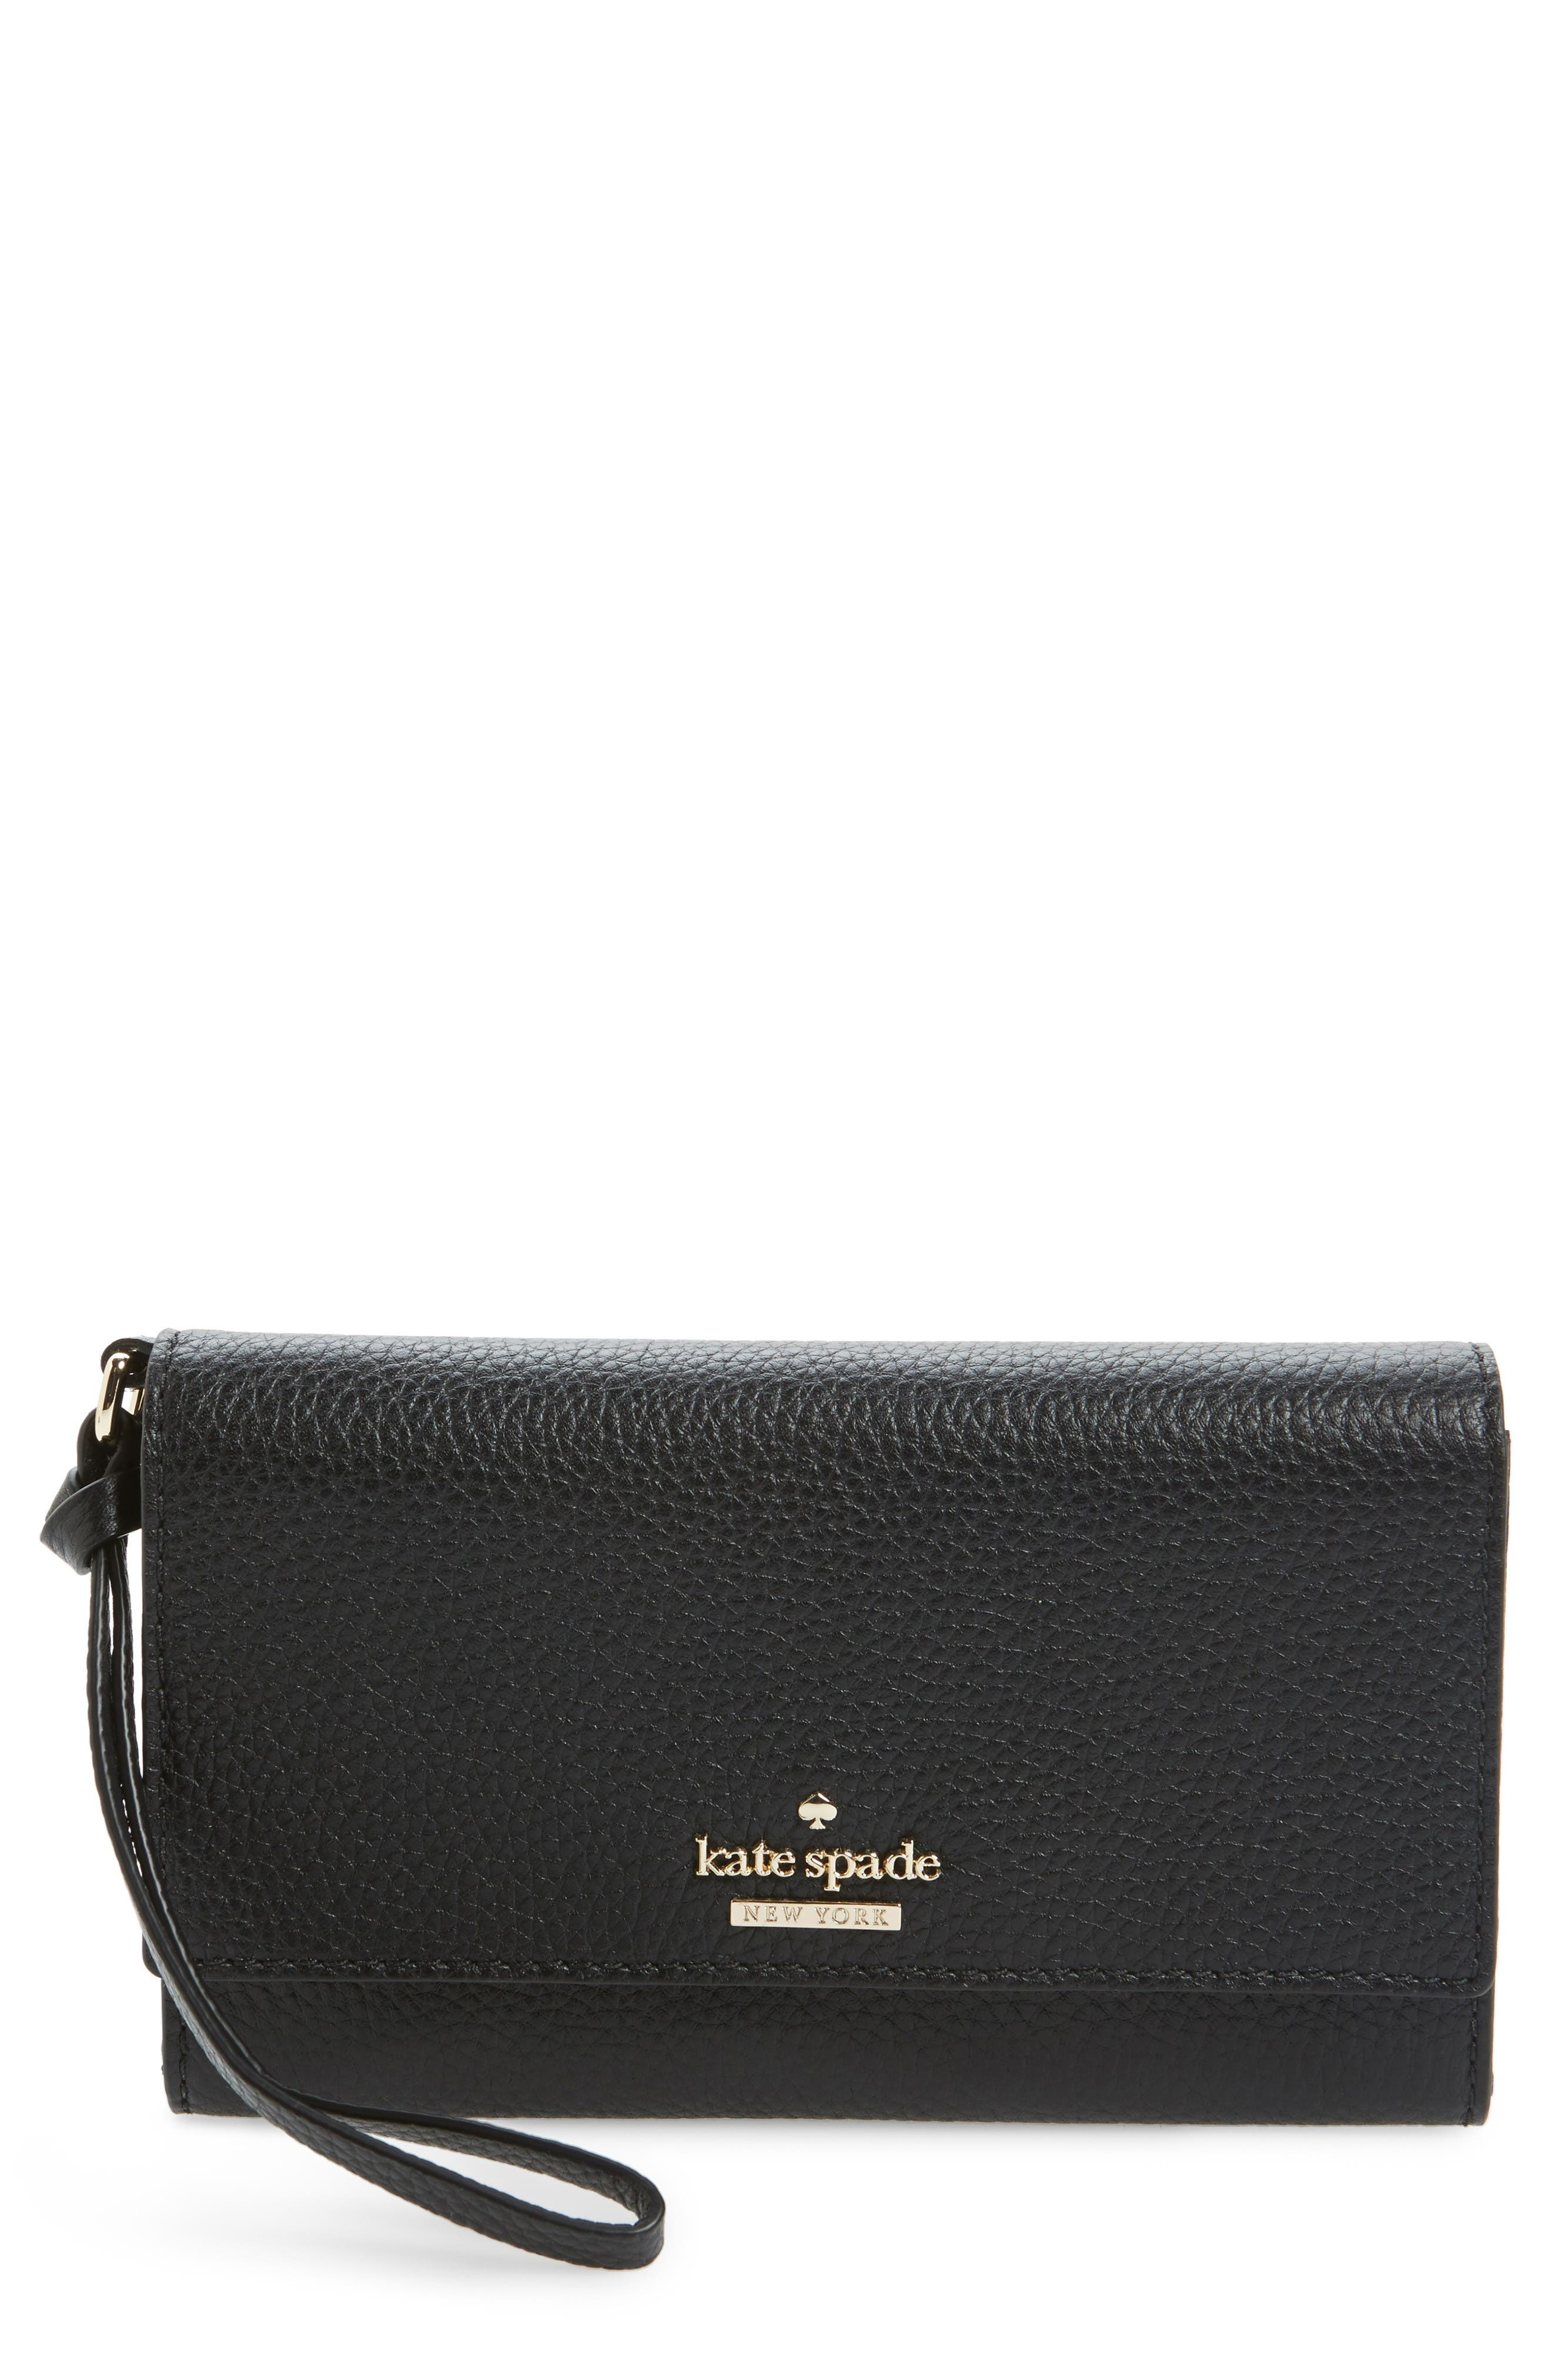 jackson street malorie leather wallet,                         Main,                         color, Black